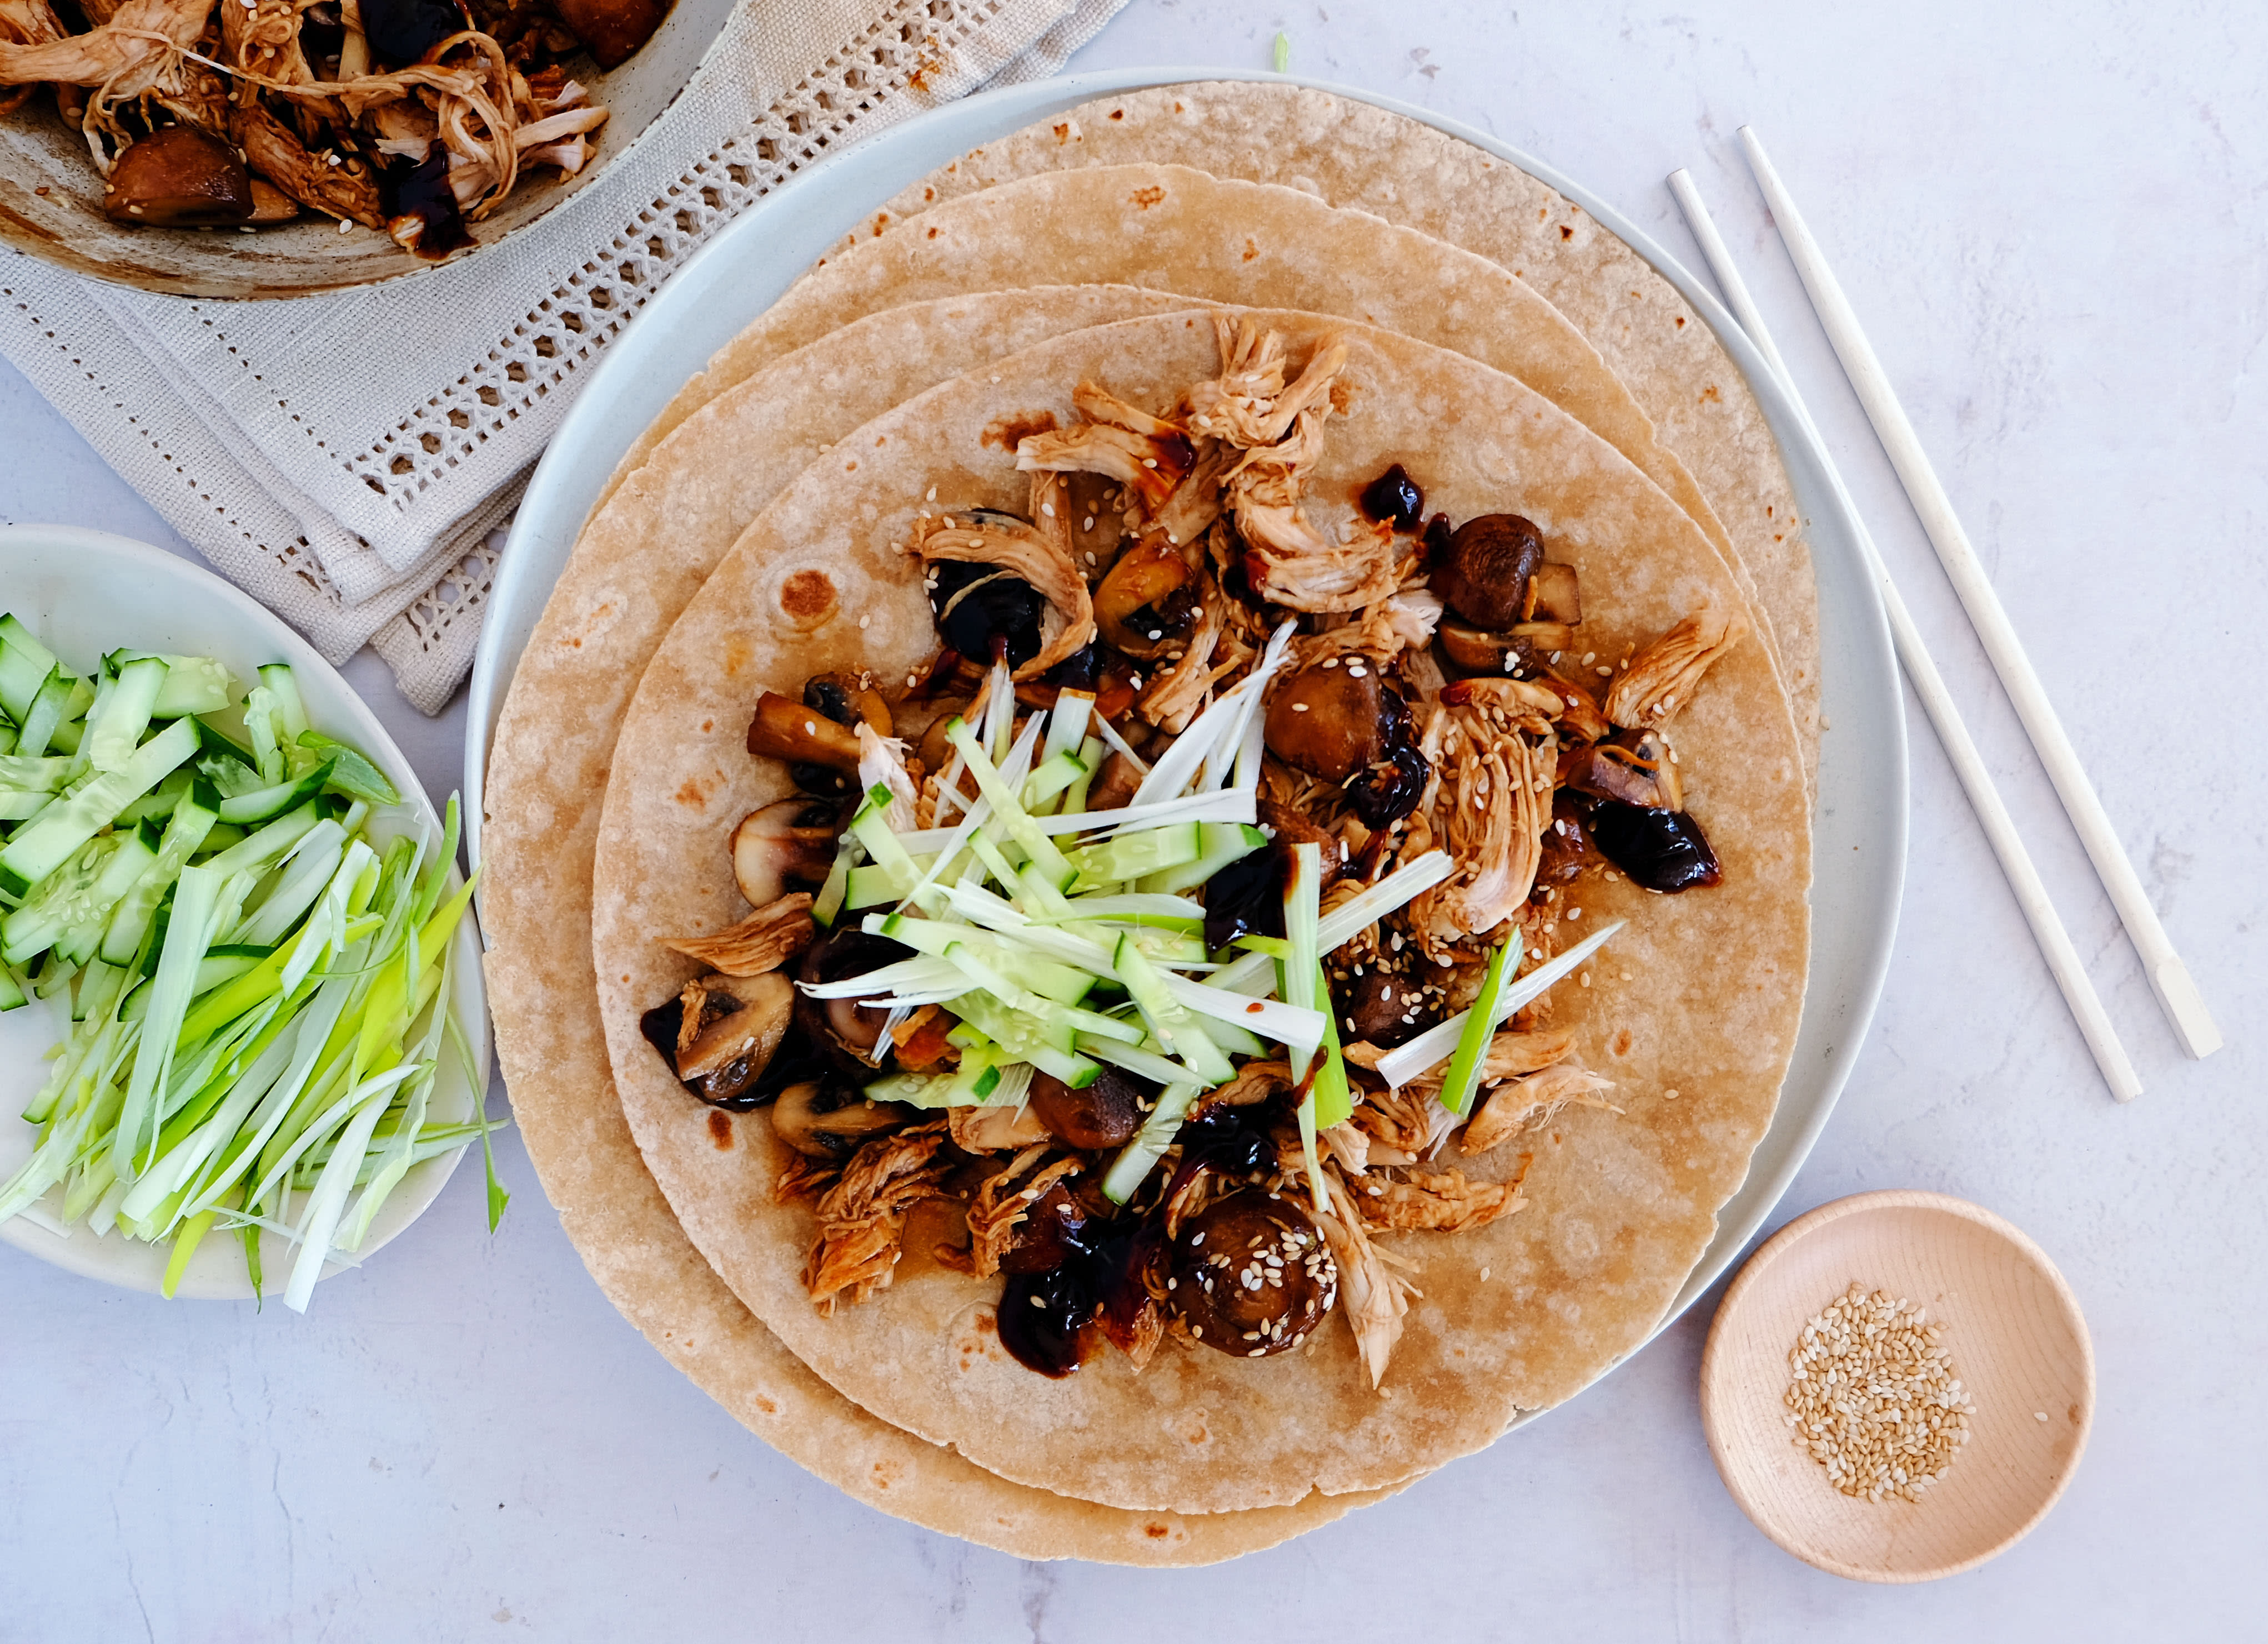 Hoisin Chicken and Mushroom Wraps with Cucumber and Spring Onion